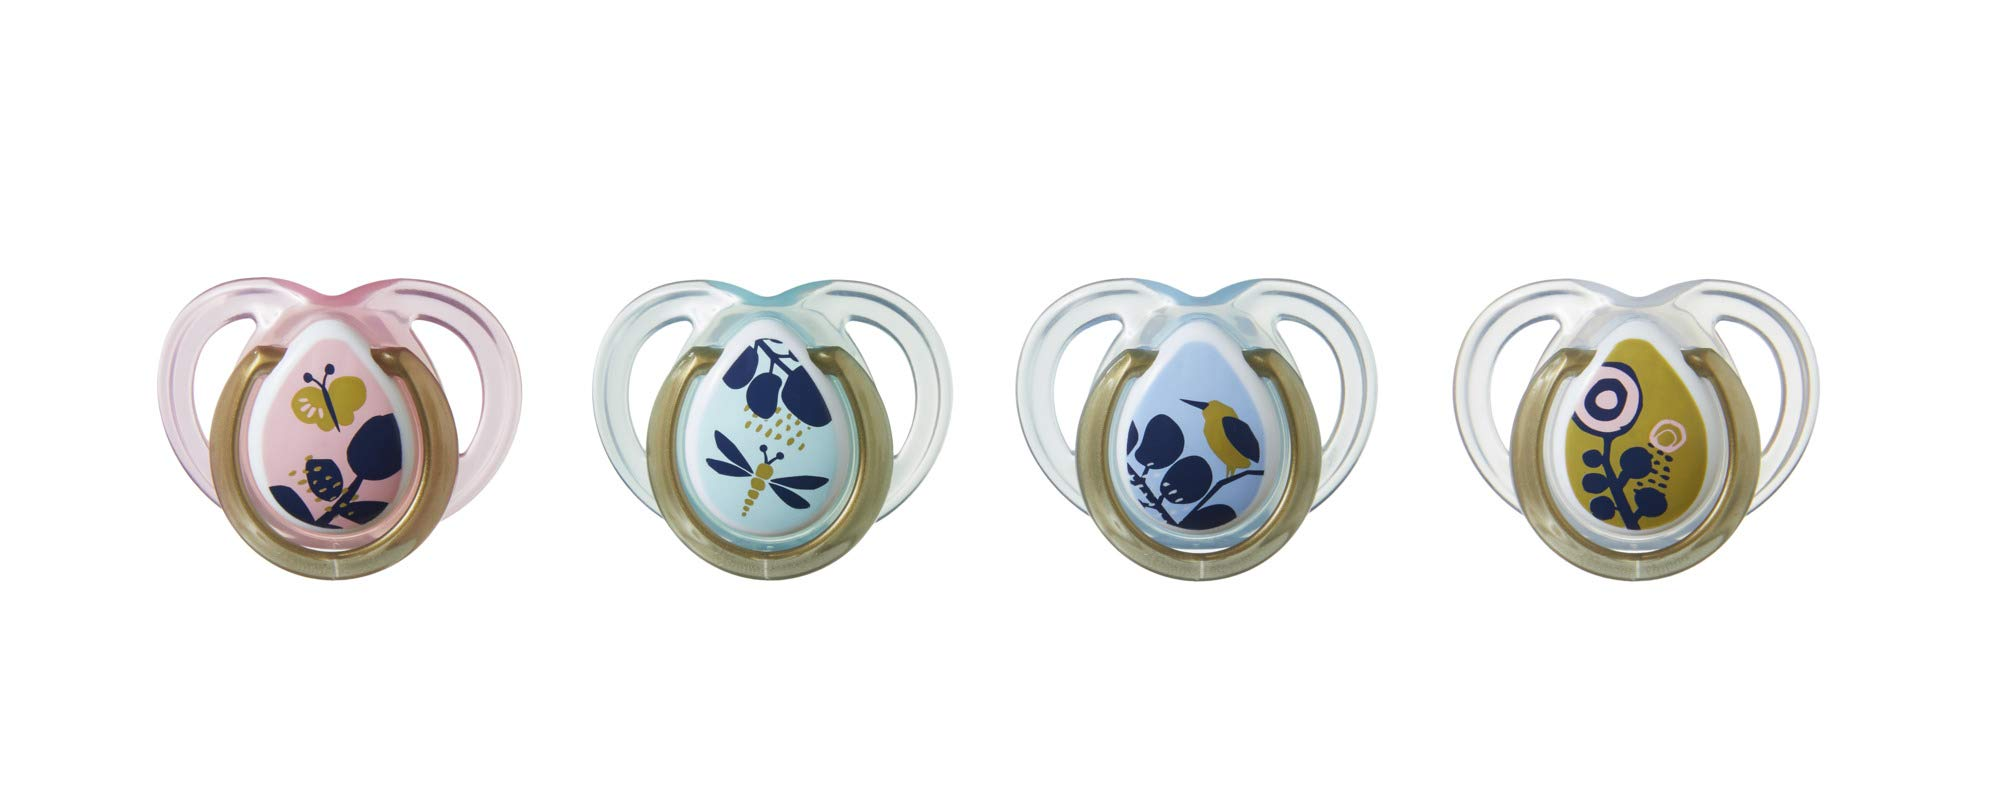 Tommee Tippee Closer to Nature Moda Baby Pacifiers 0-6 months - 4 count by Tommee Tippee